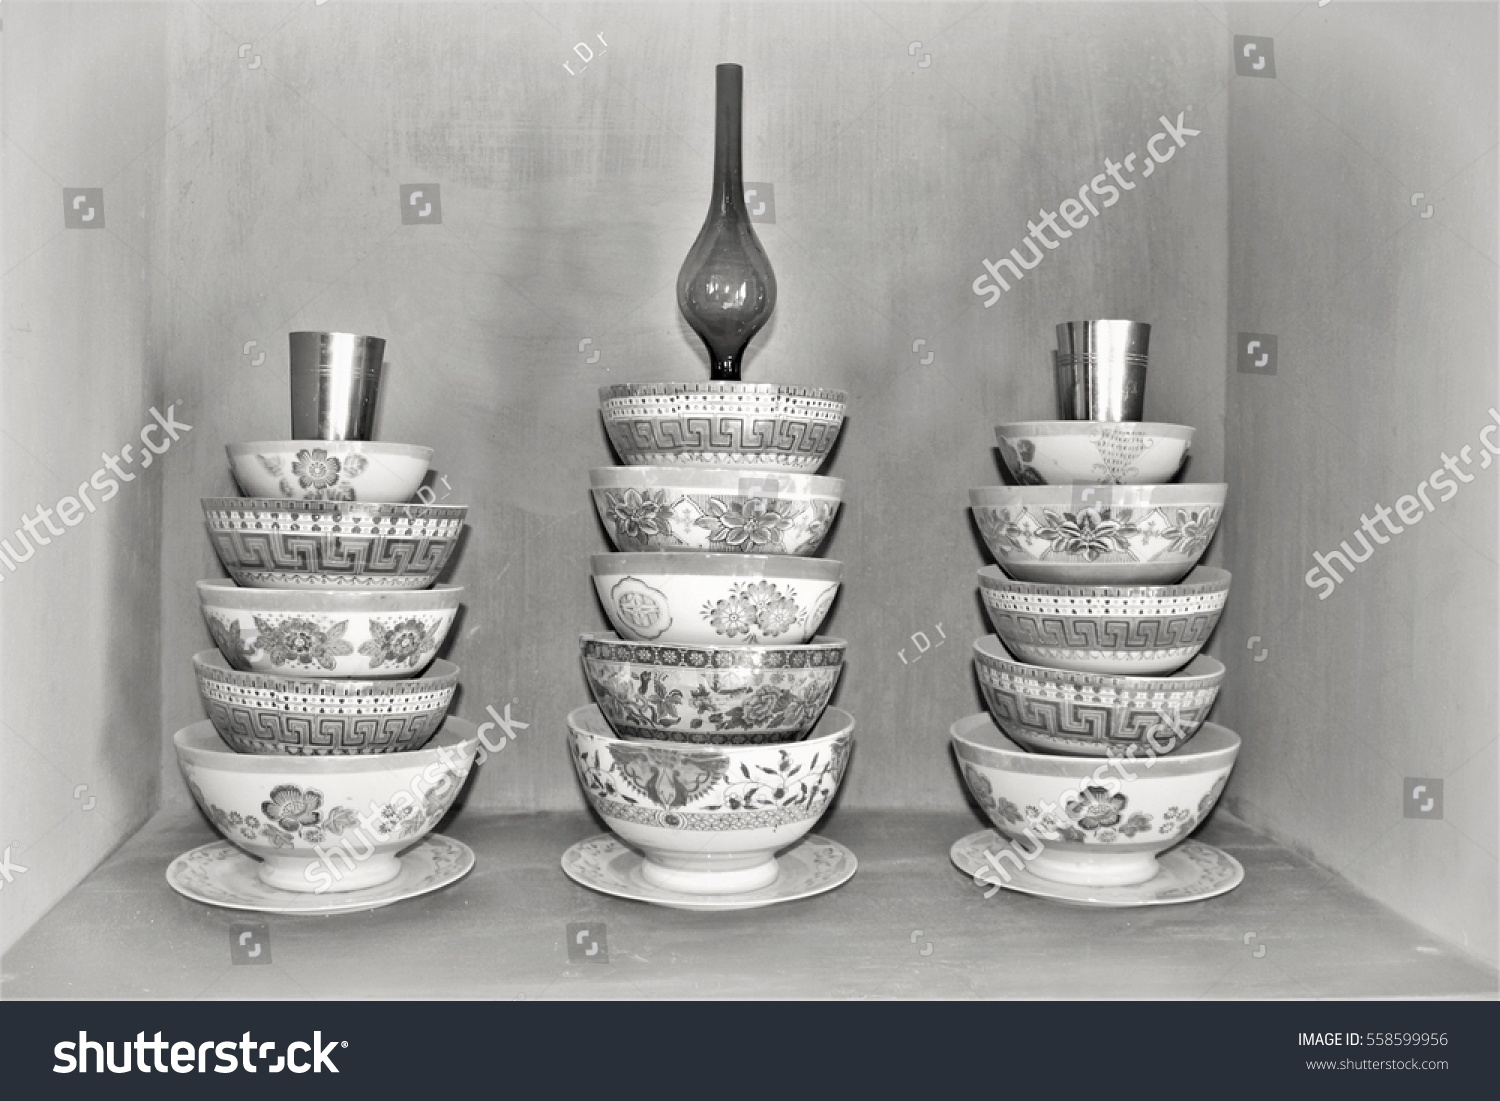 stock-photo-ceramic-bowls-in-selective-f